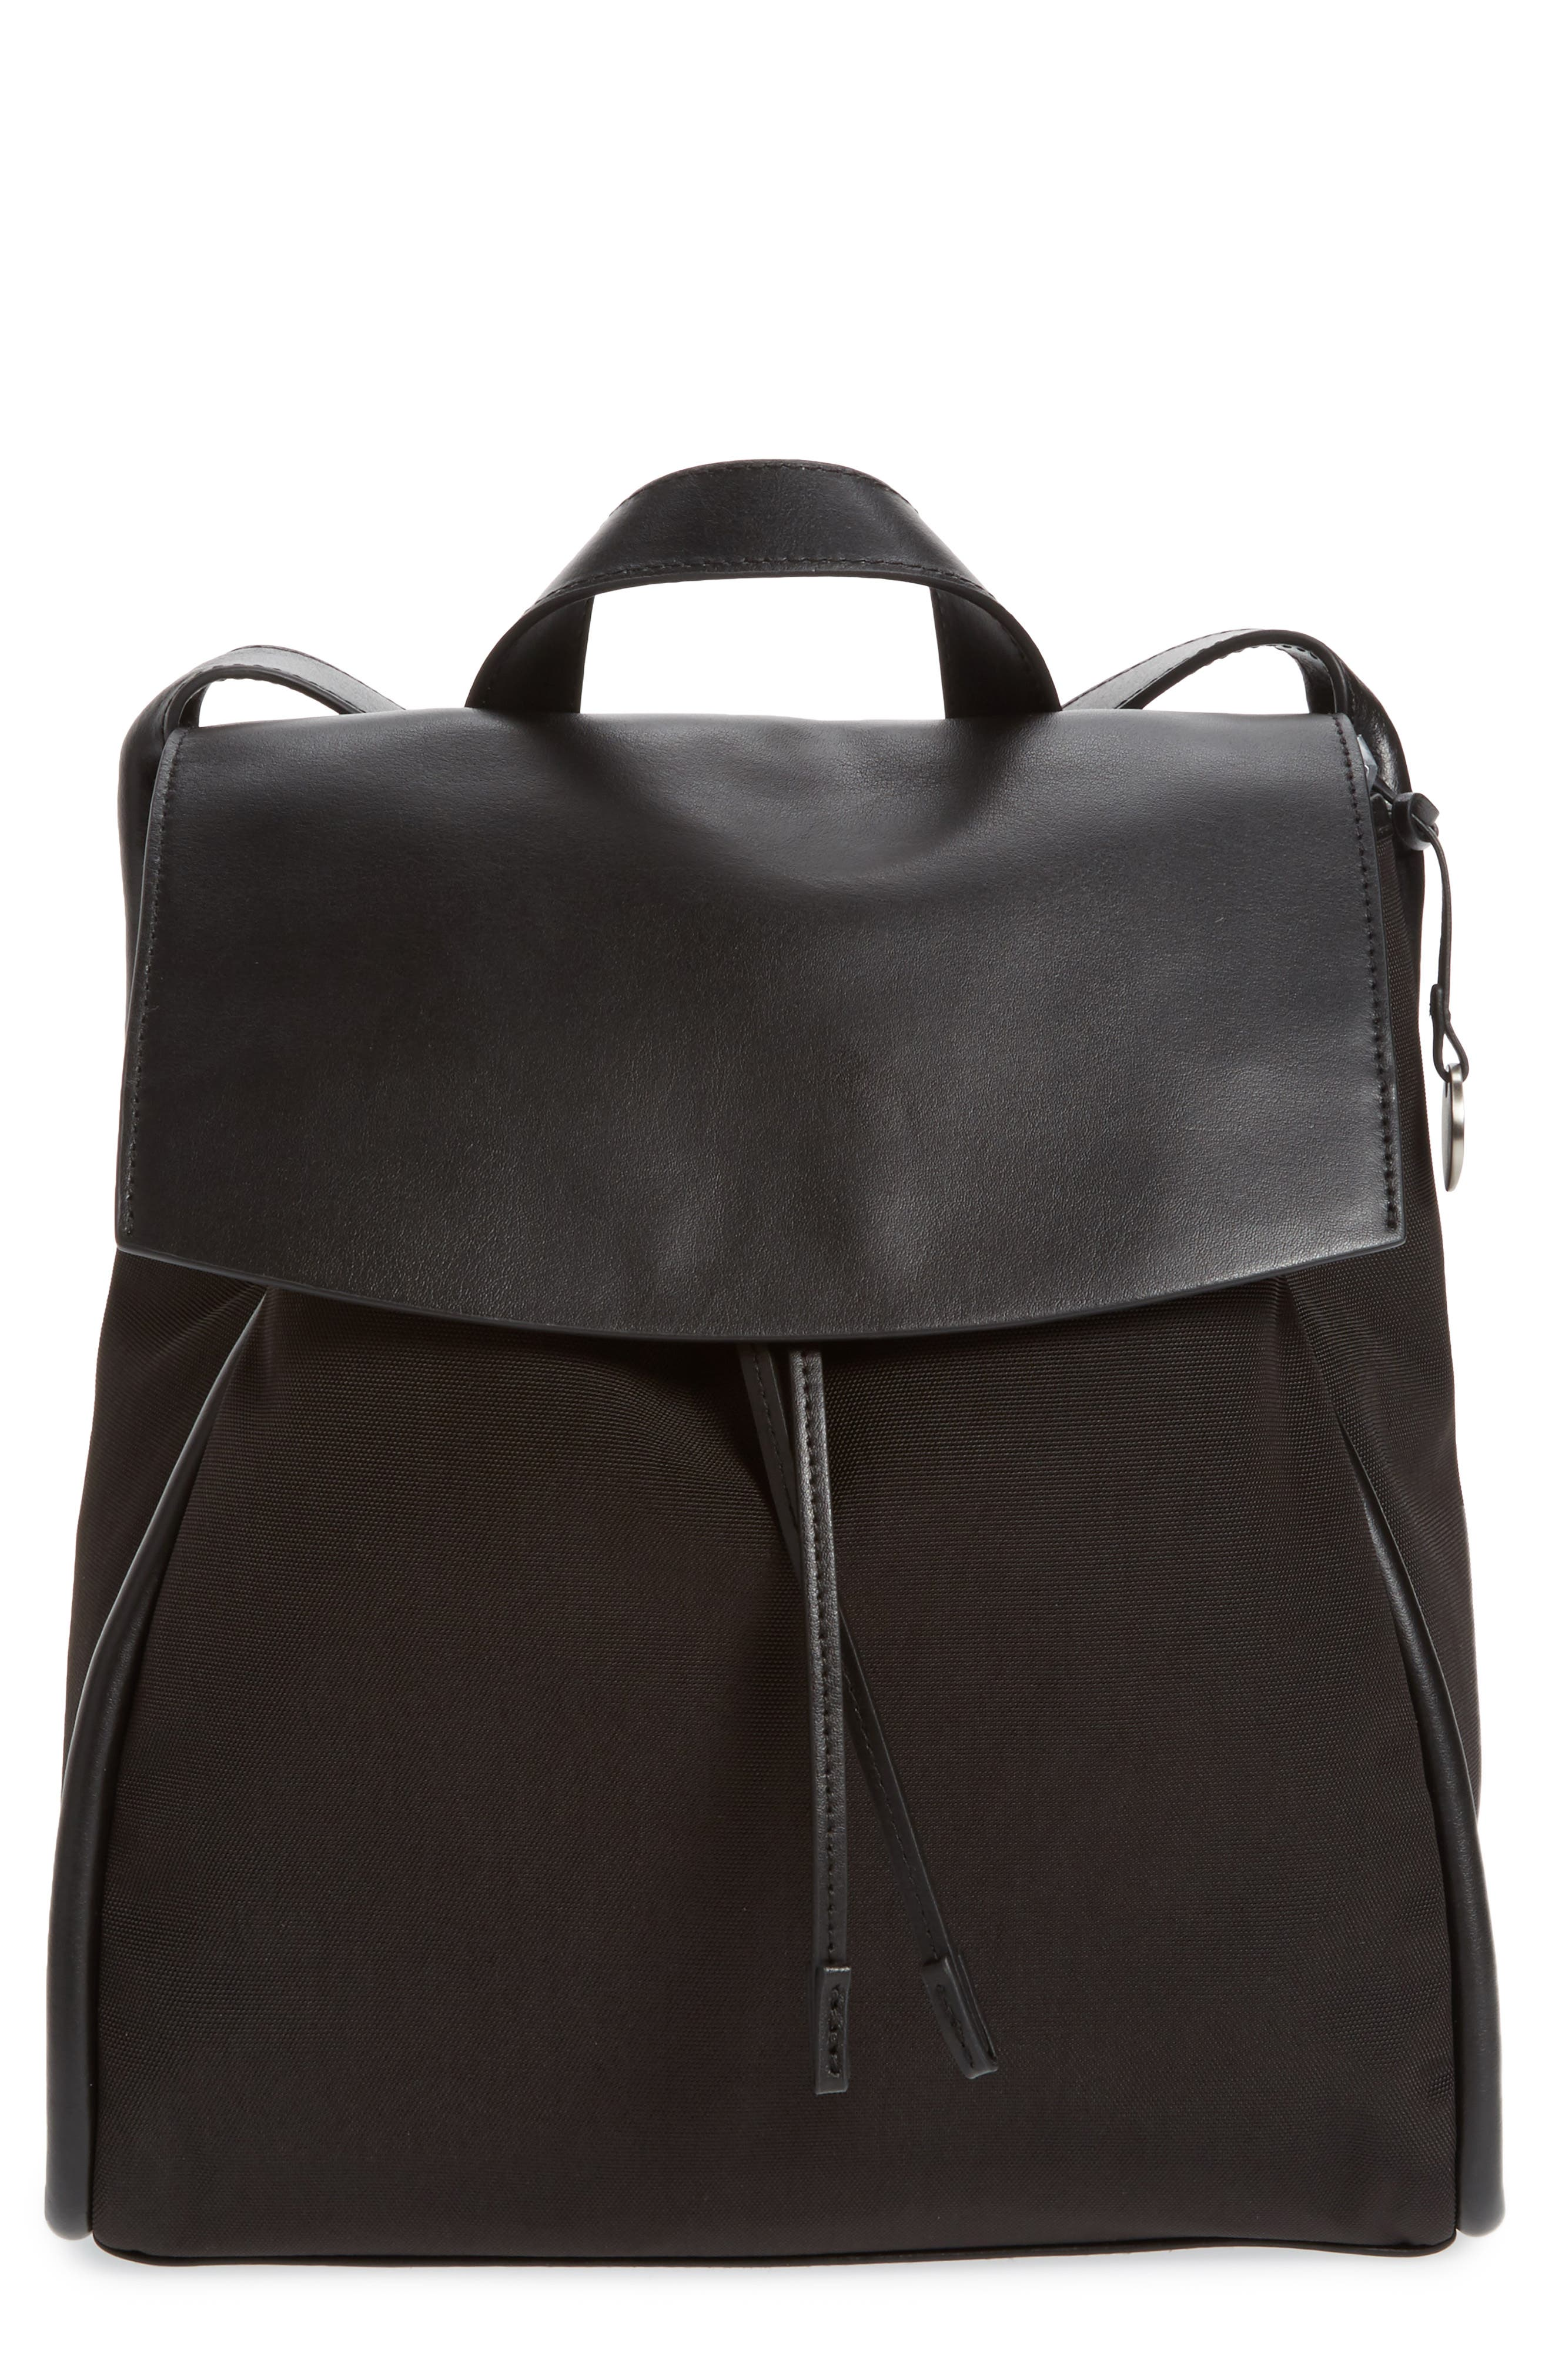 Ebba Leather Backpack,                         Main,                         color, Black